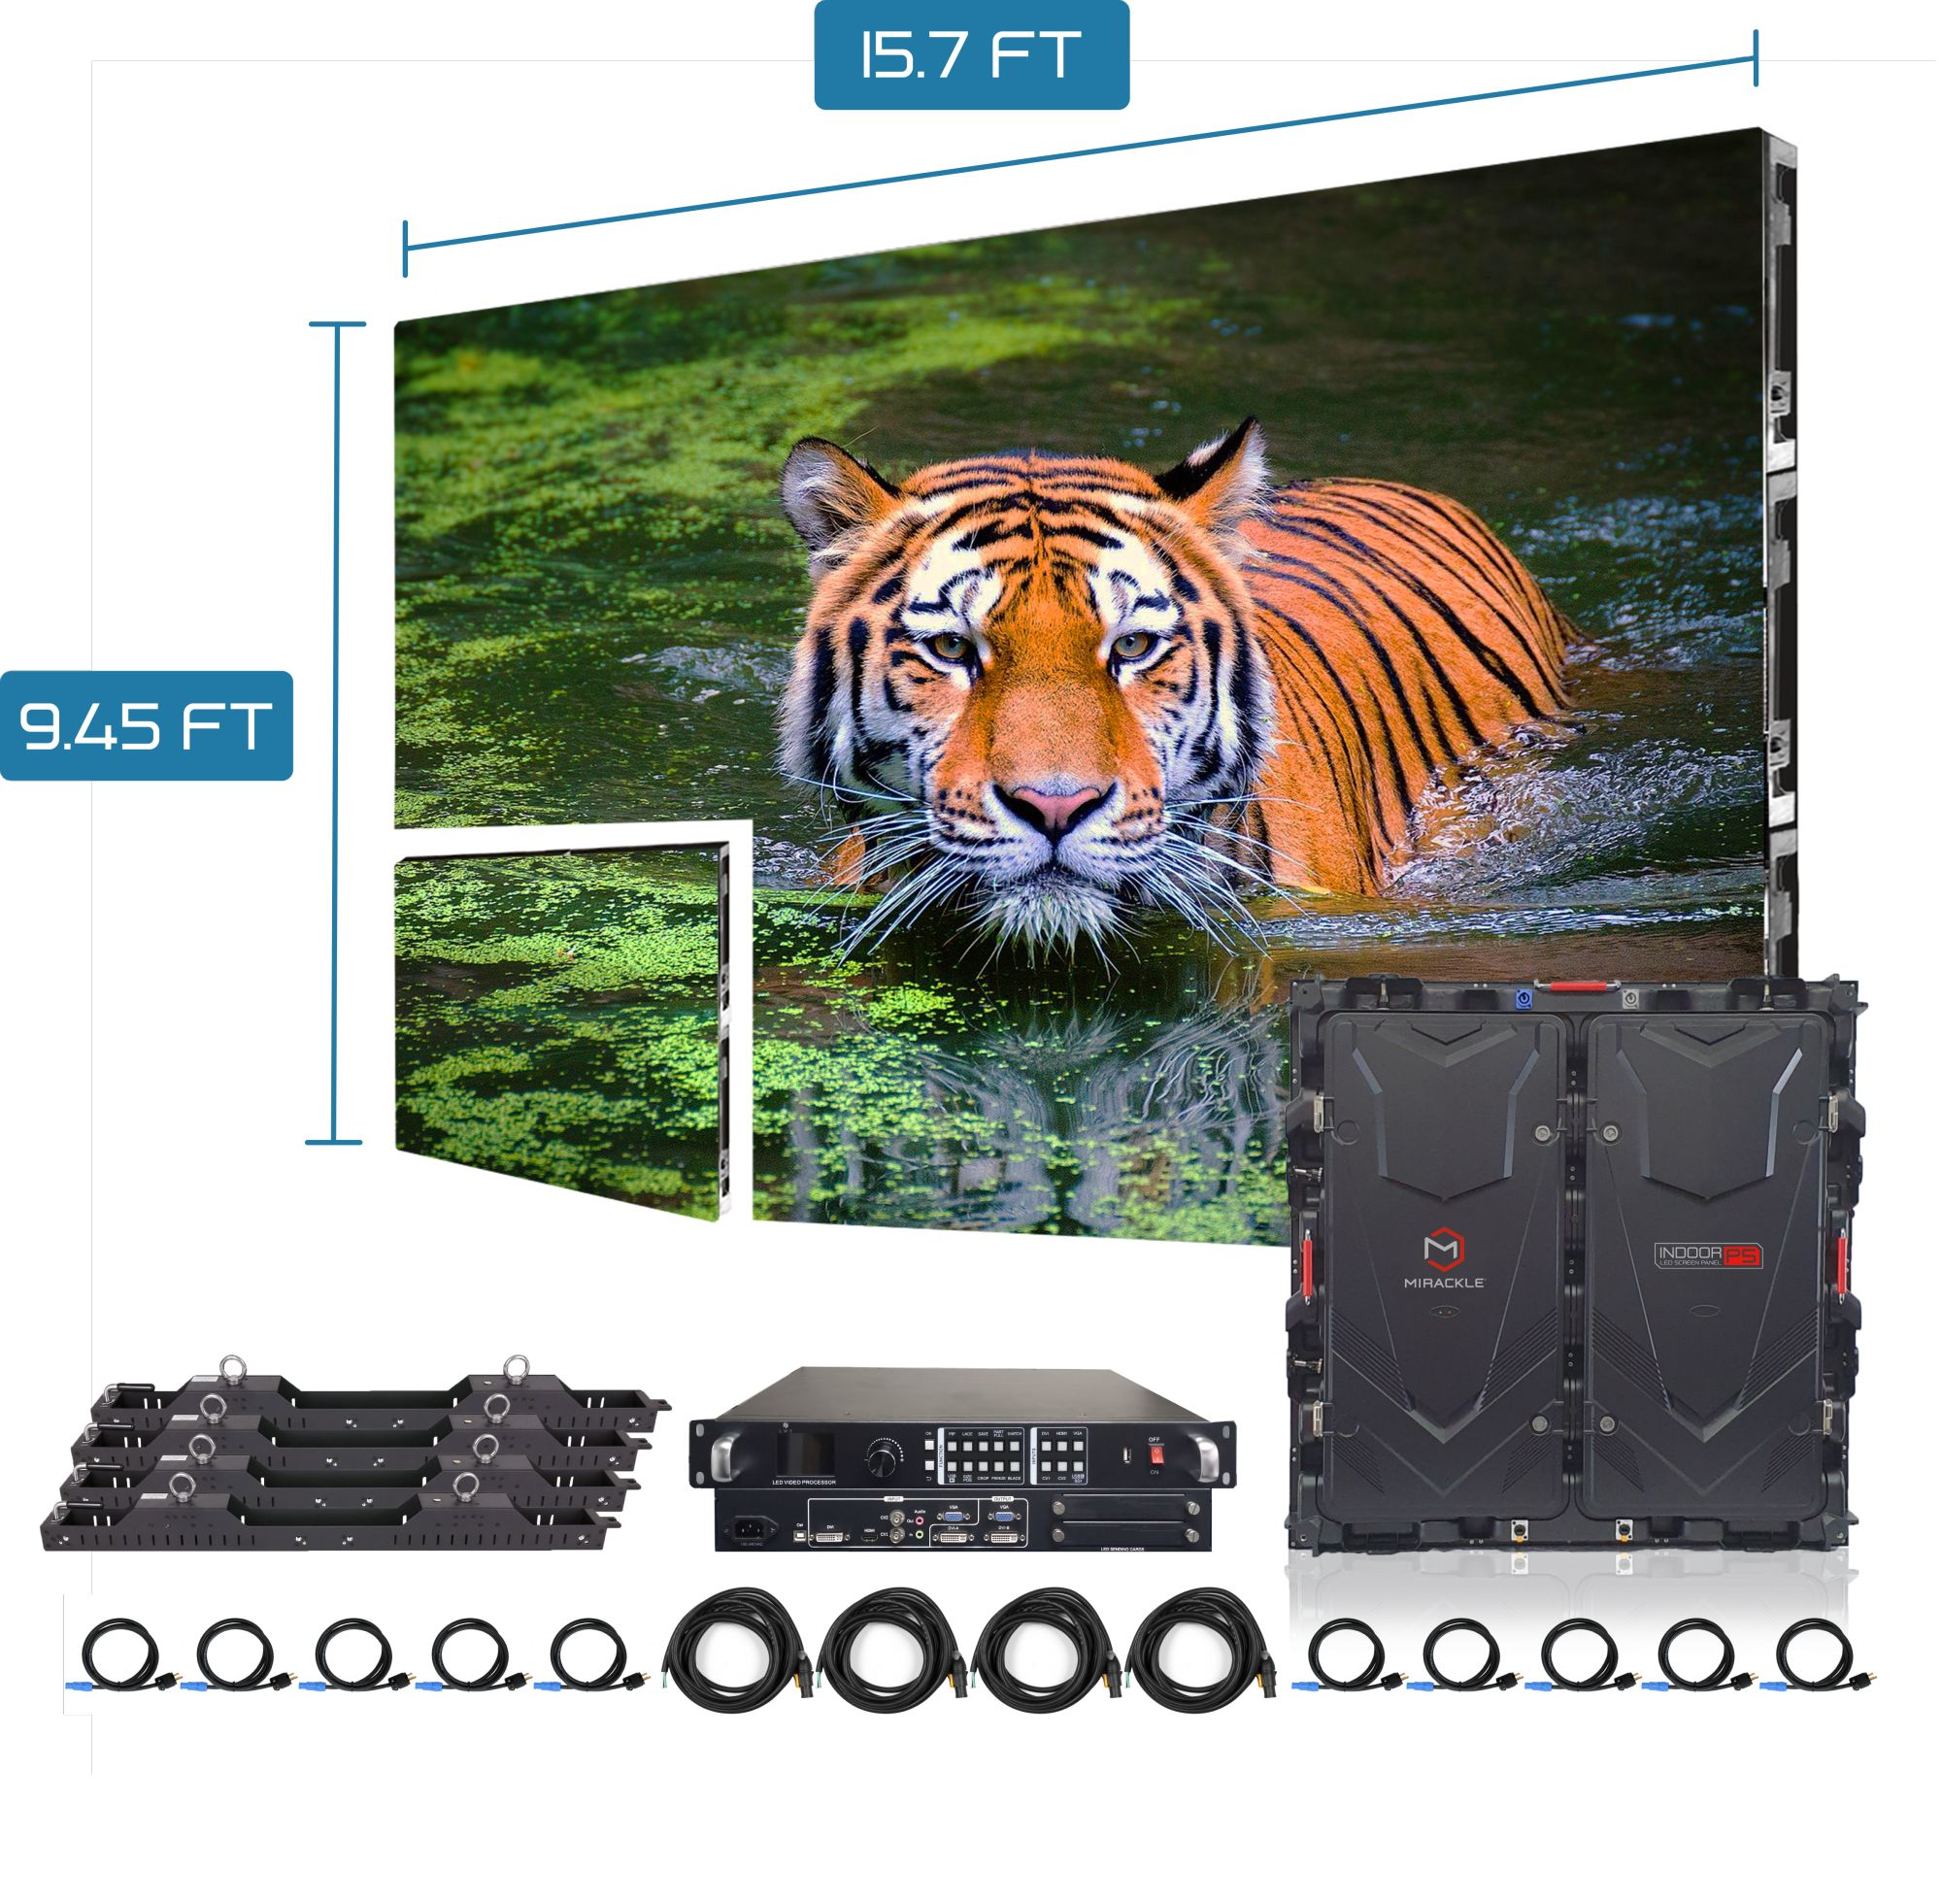 outdoor p2.976 led display screen